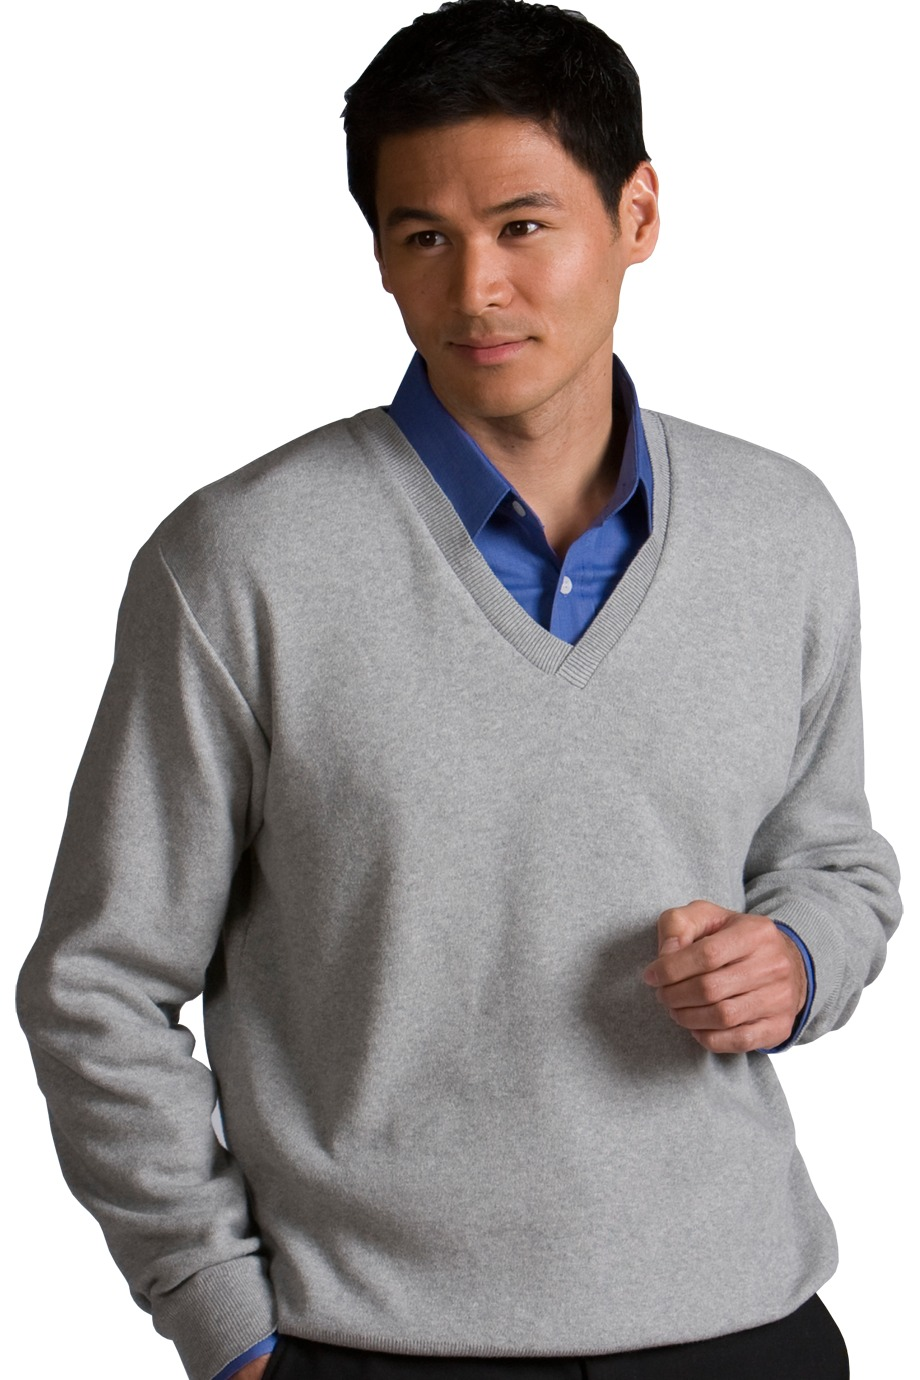 Edwards Garment 700 - Men's Cotton Cashmere V-Neck Sweater